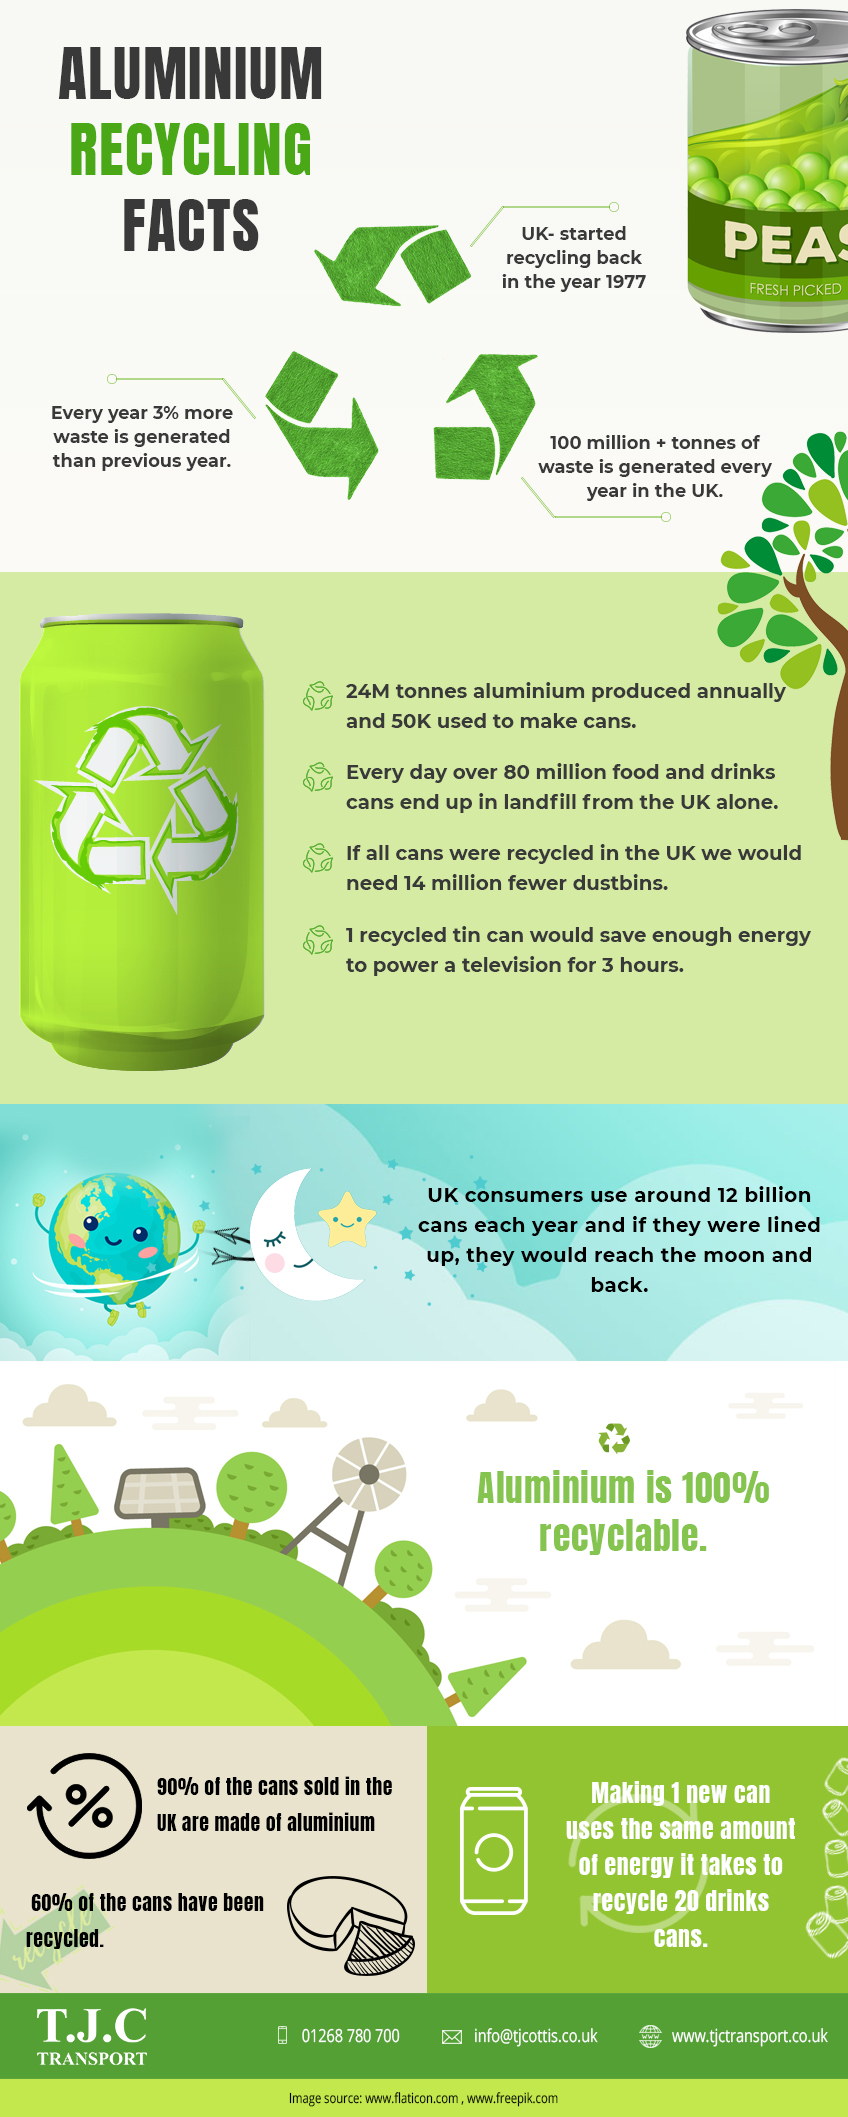 aluminiumrecyclefacts